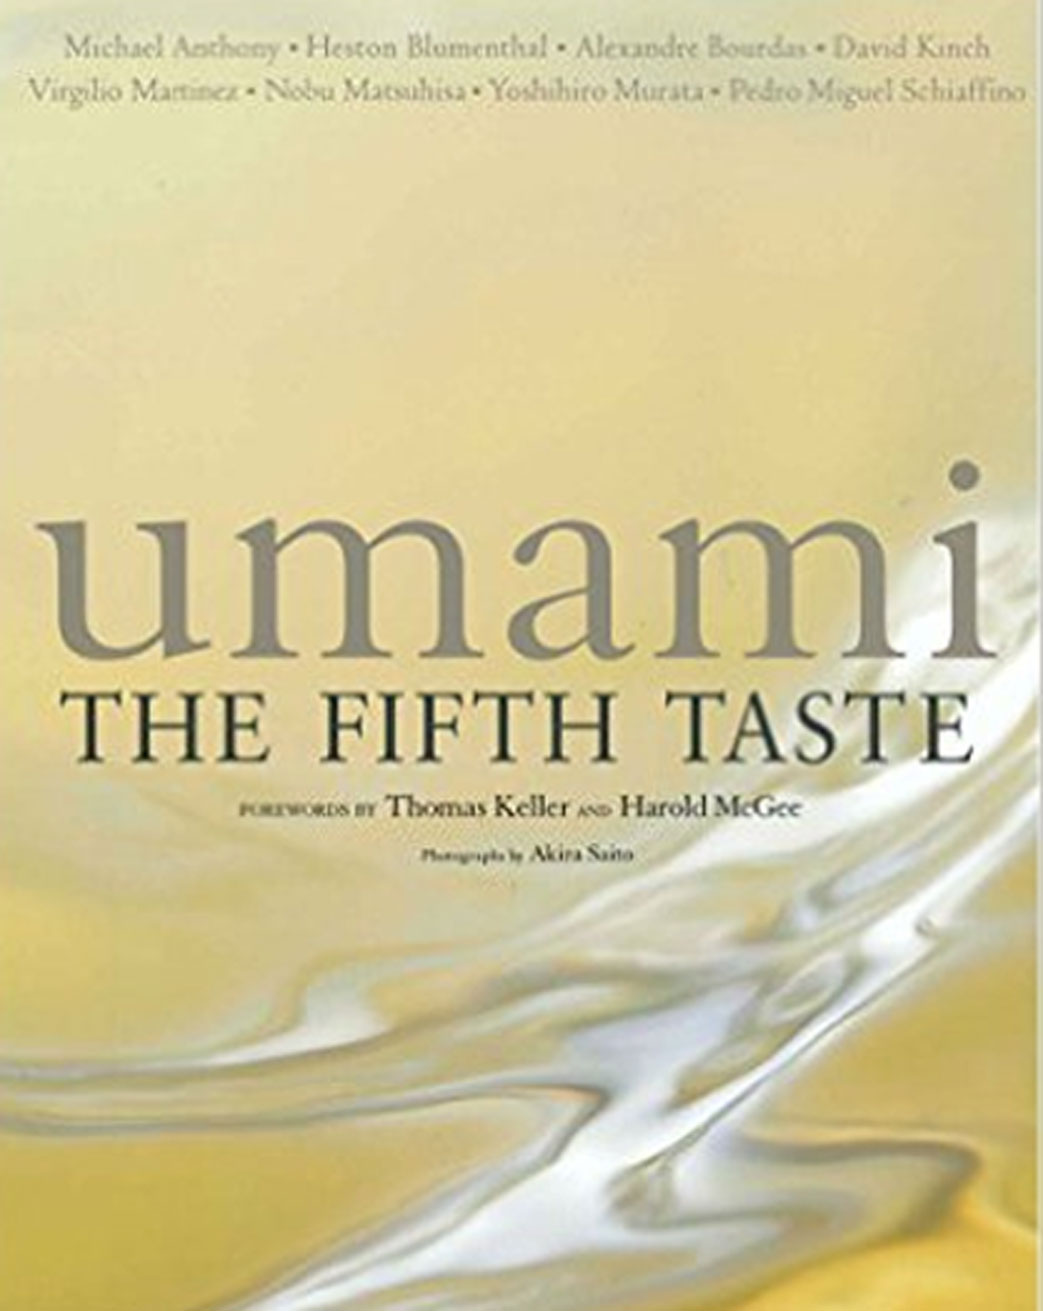 Umami: THE FIFTH TASTE – guidebook review